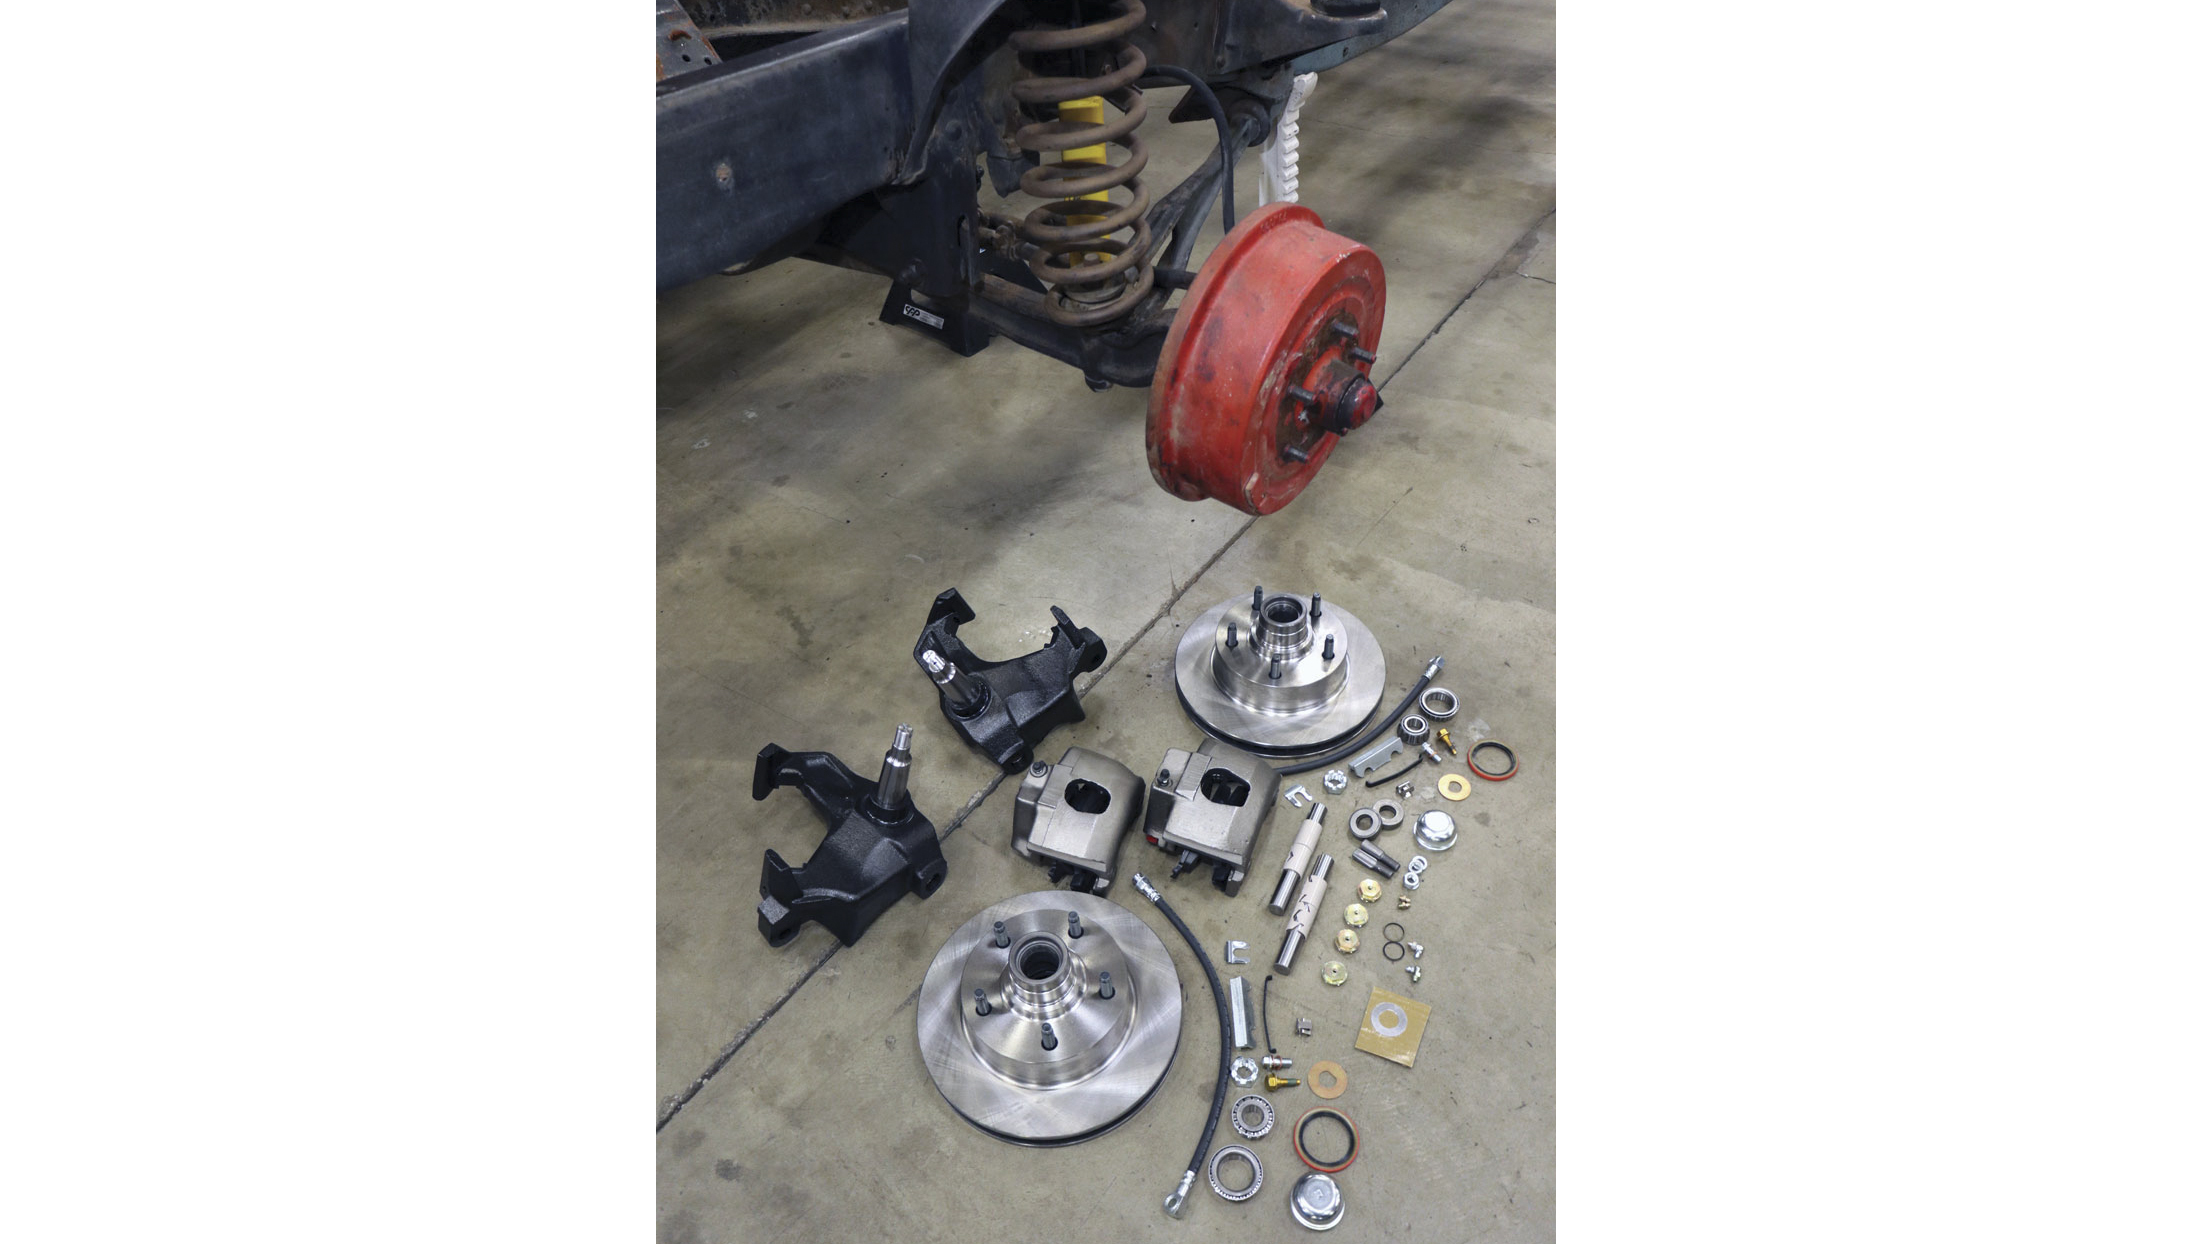 CPP's F100 Disc Brake Spindle kit is an key brake upgrade for 1965 to 1972 Ford Trucks